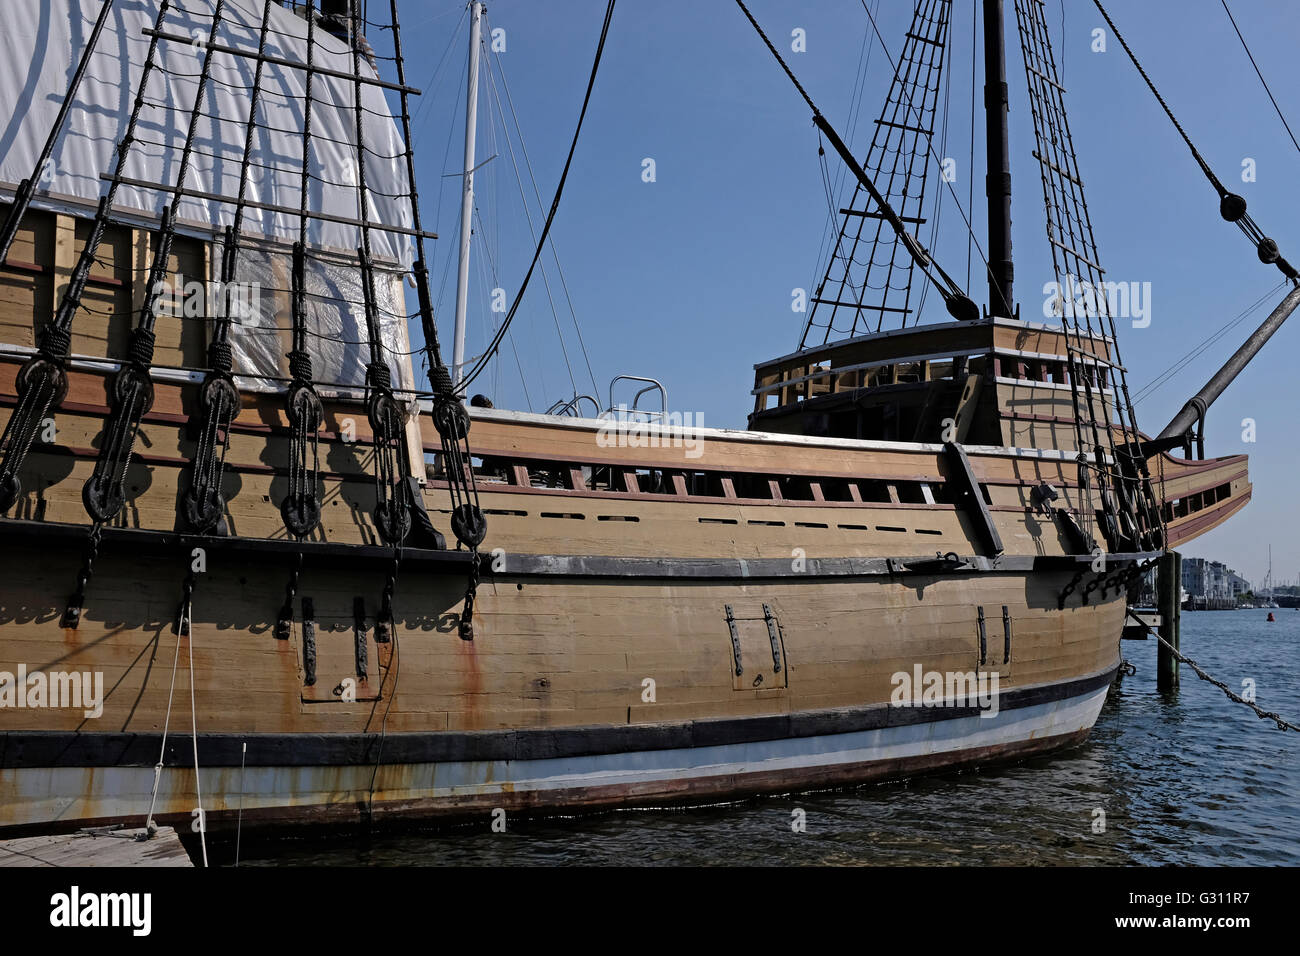 Die Mayflower II angedockt in Mystic Seaport, Connecticut Stockbild